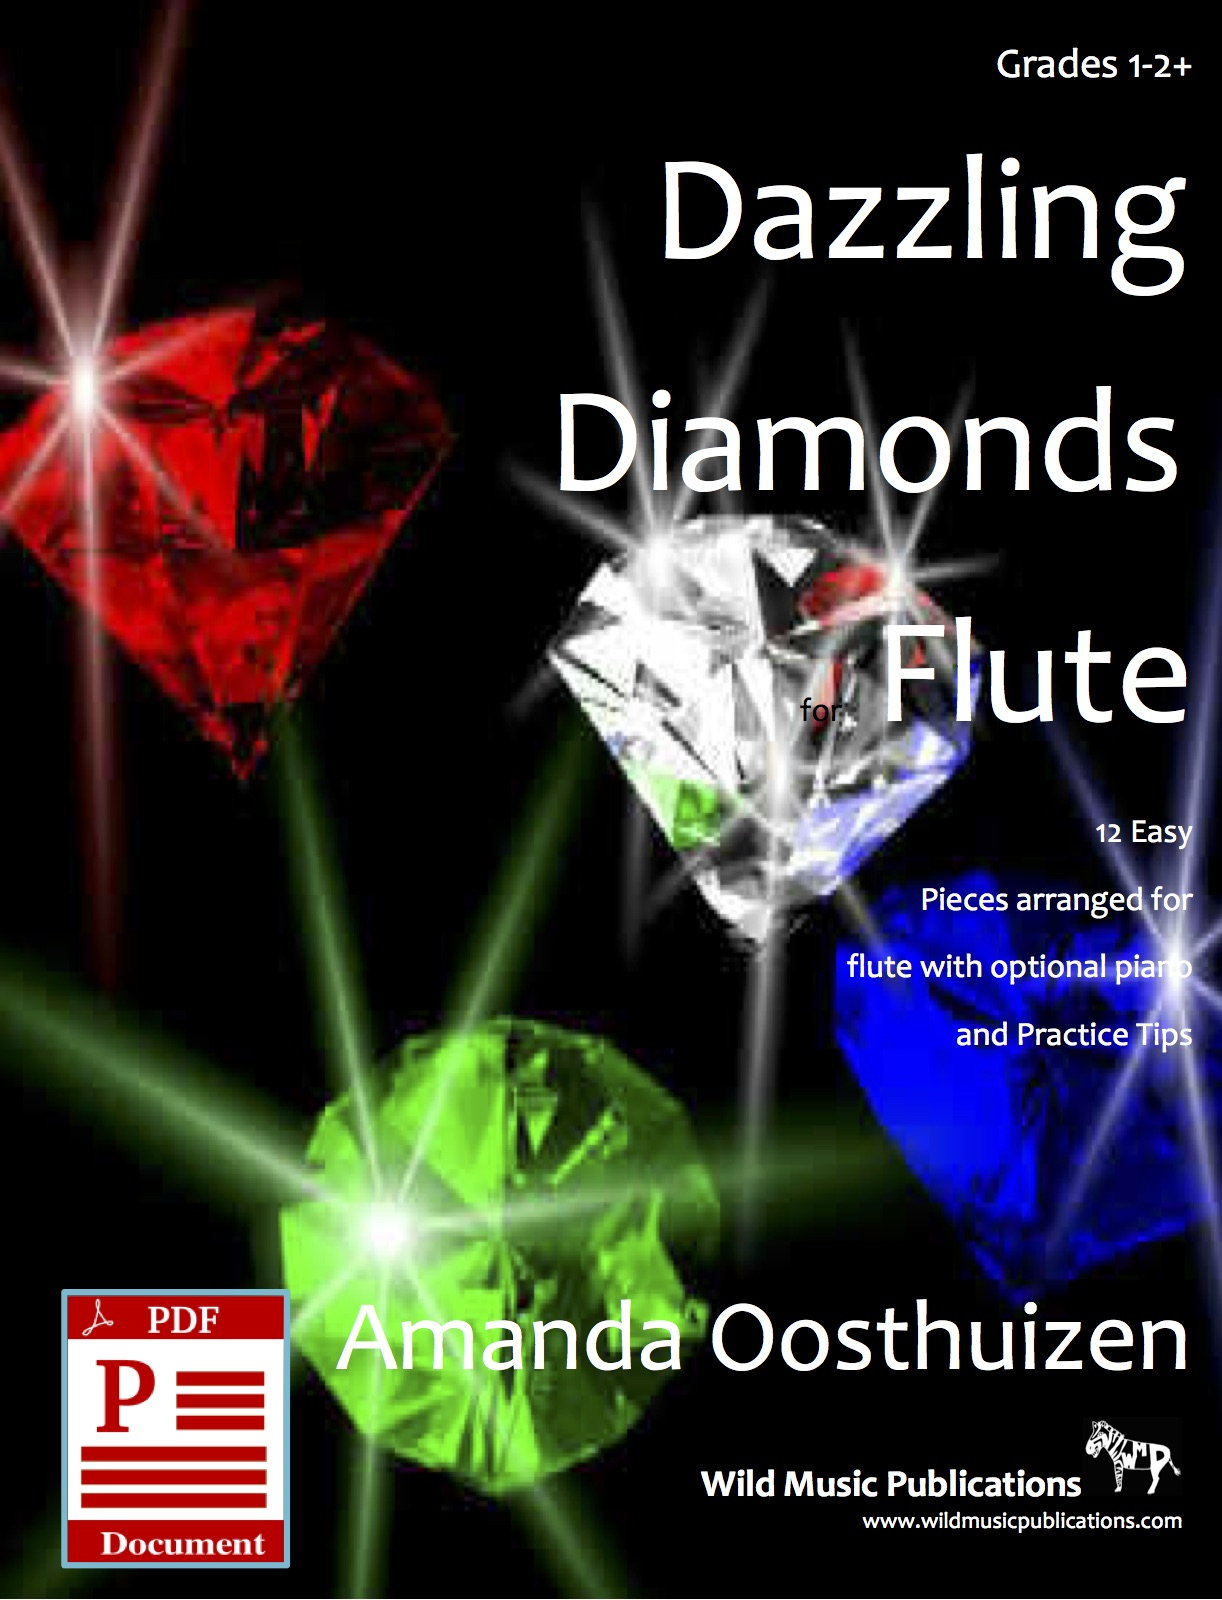 Dazzling Diamonds Easy Flute Book - Wild Music Publications